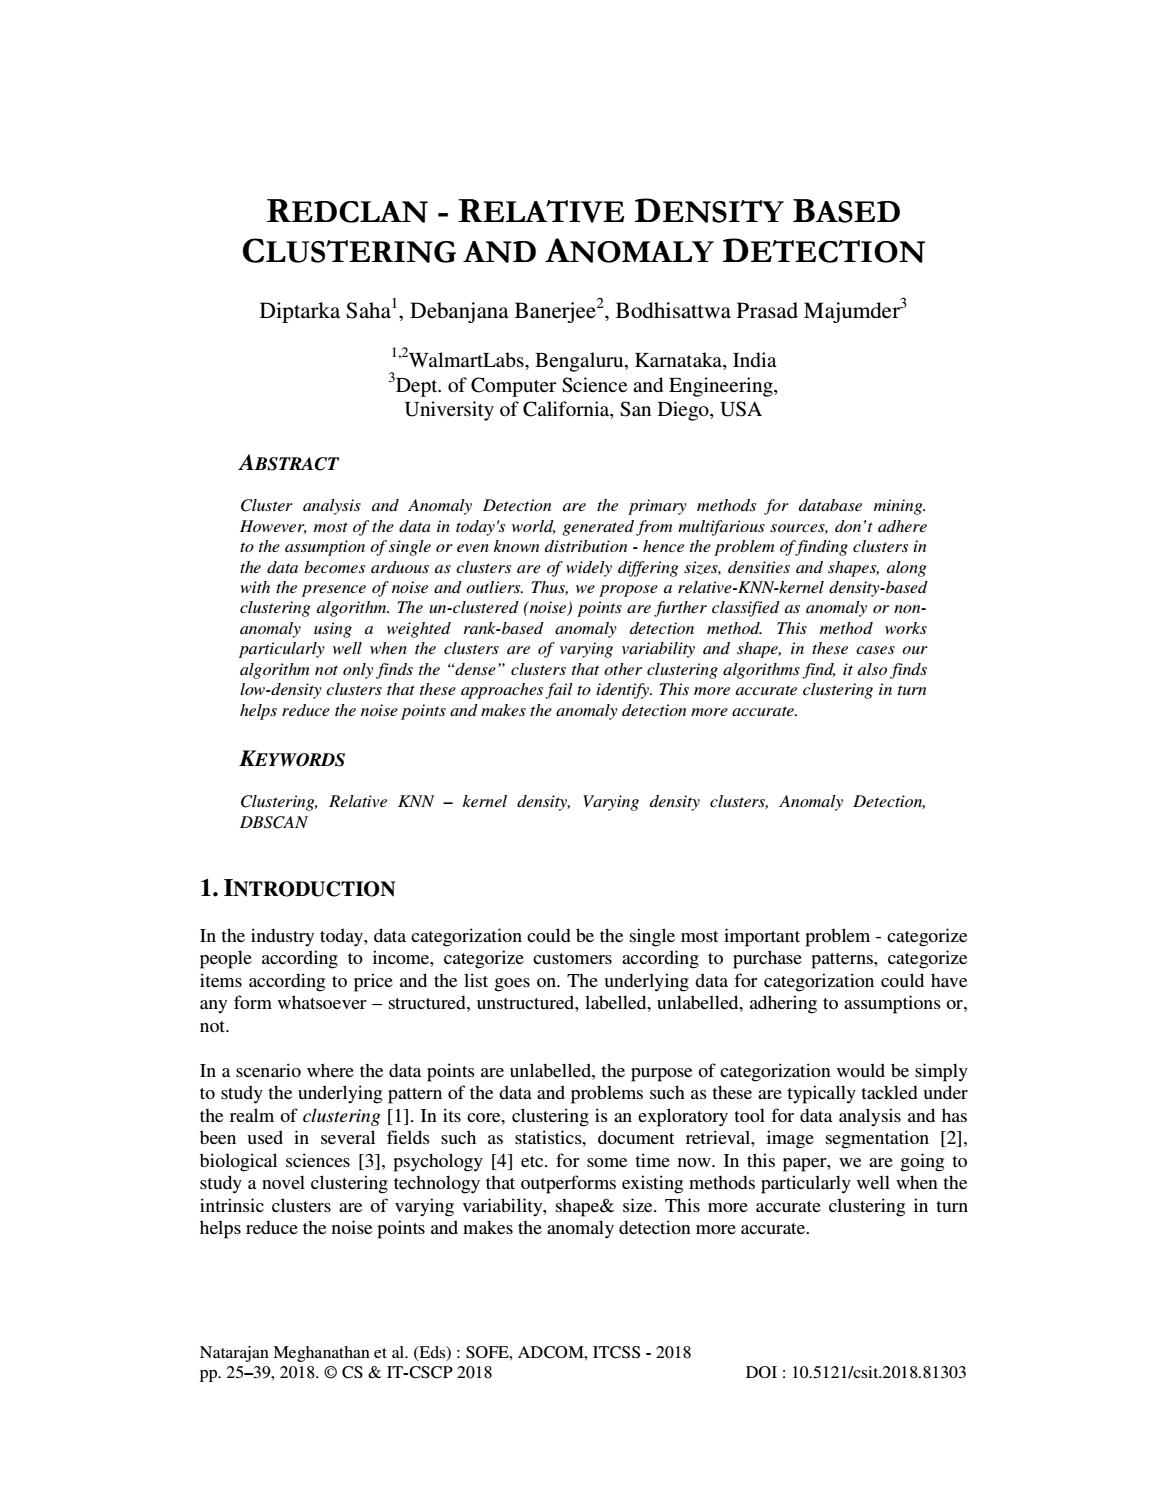 REDCLAN - RELATIVE DENSITY BASED CLUSTERING AND ANOMALY